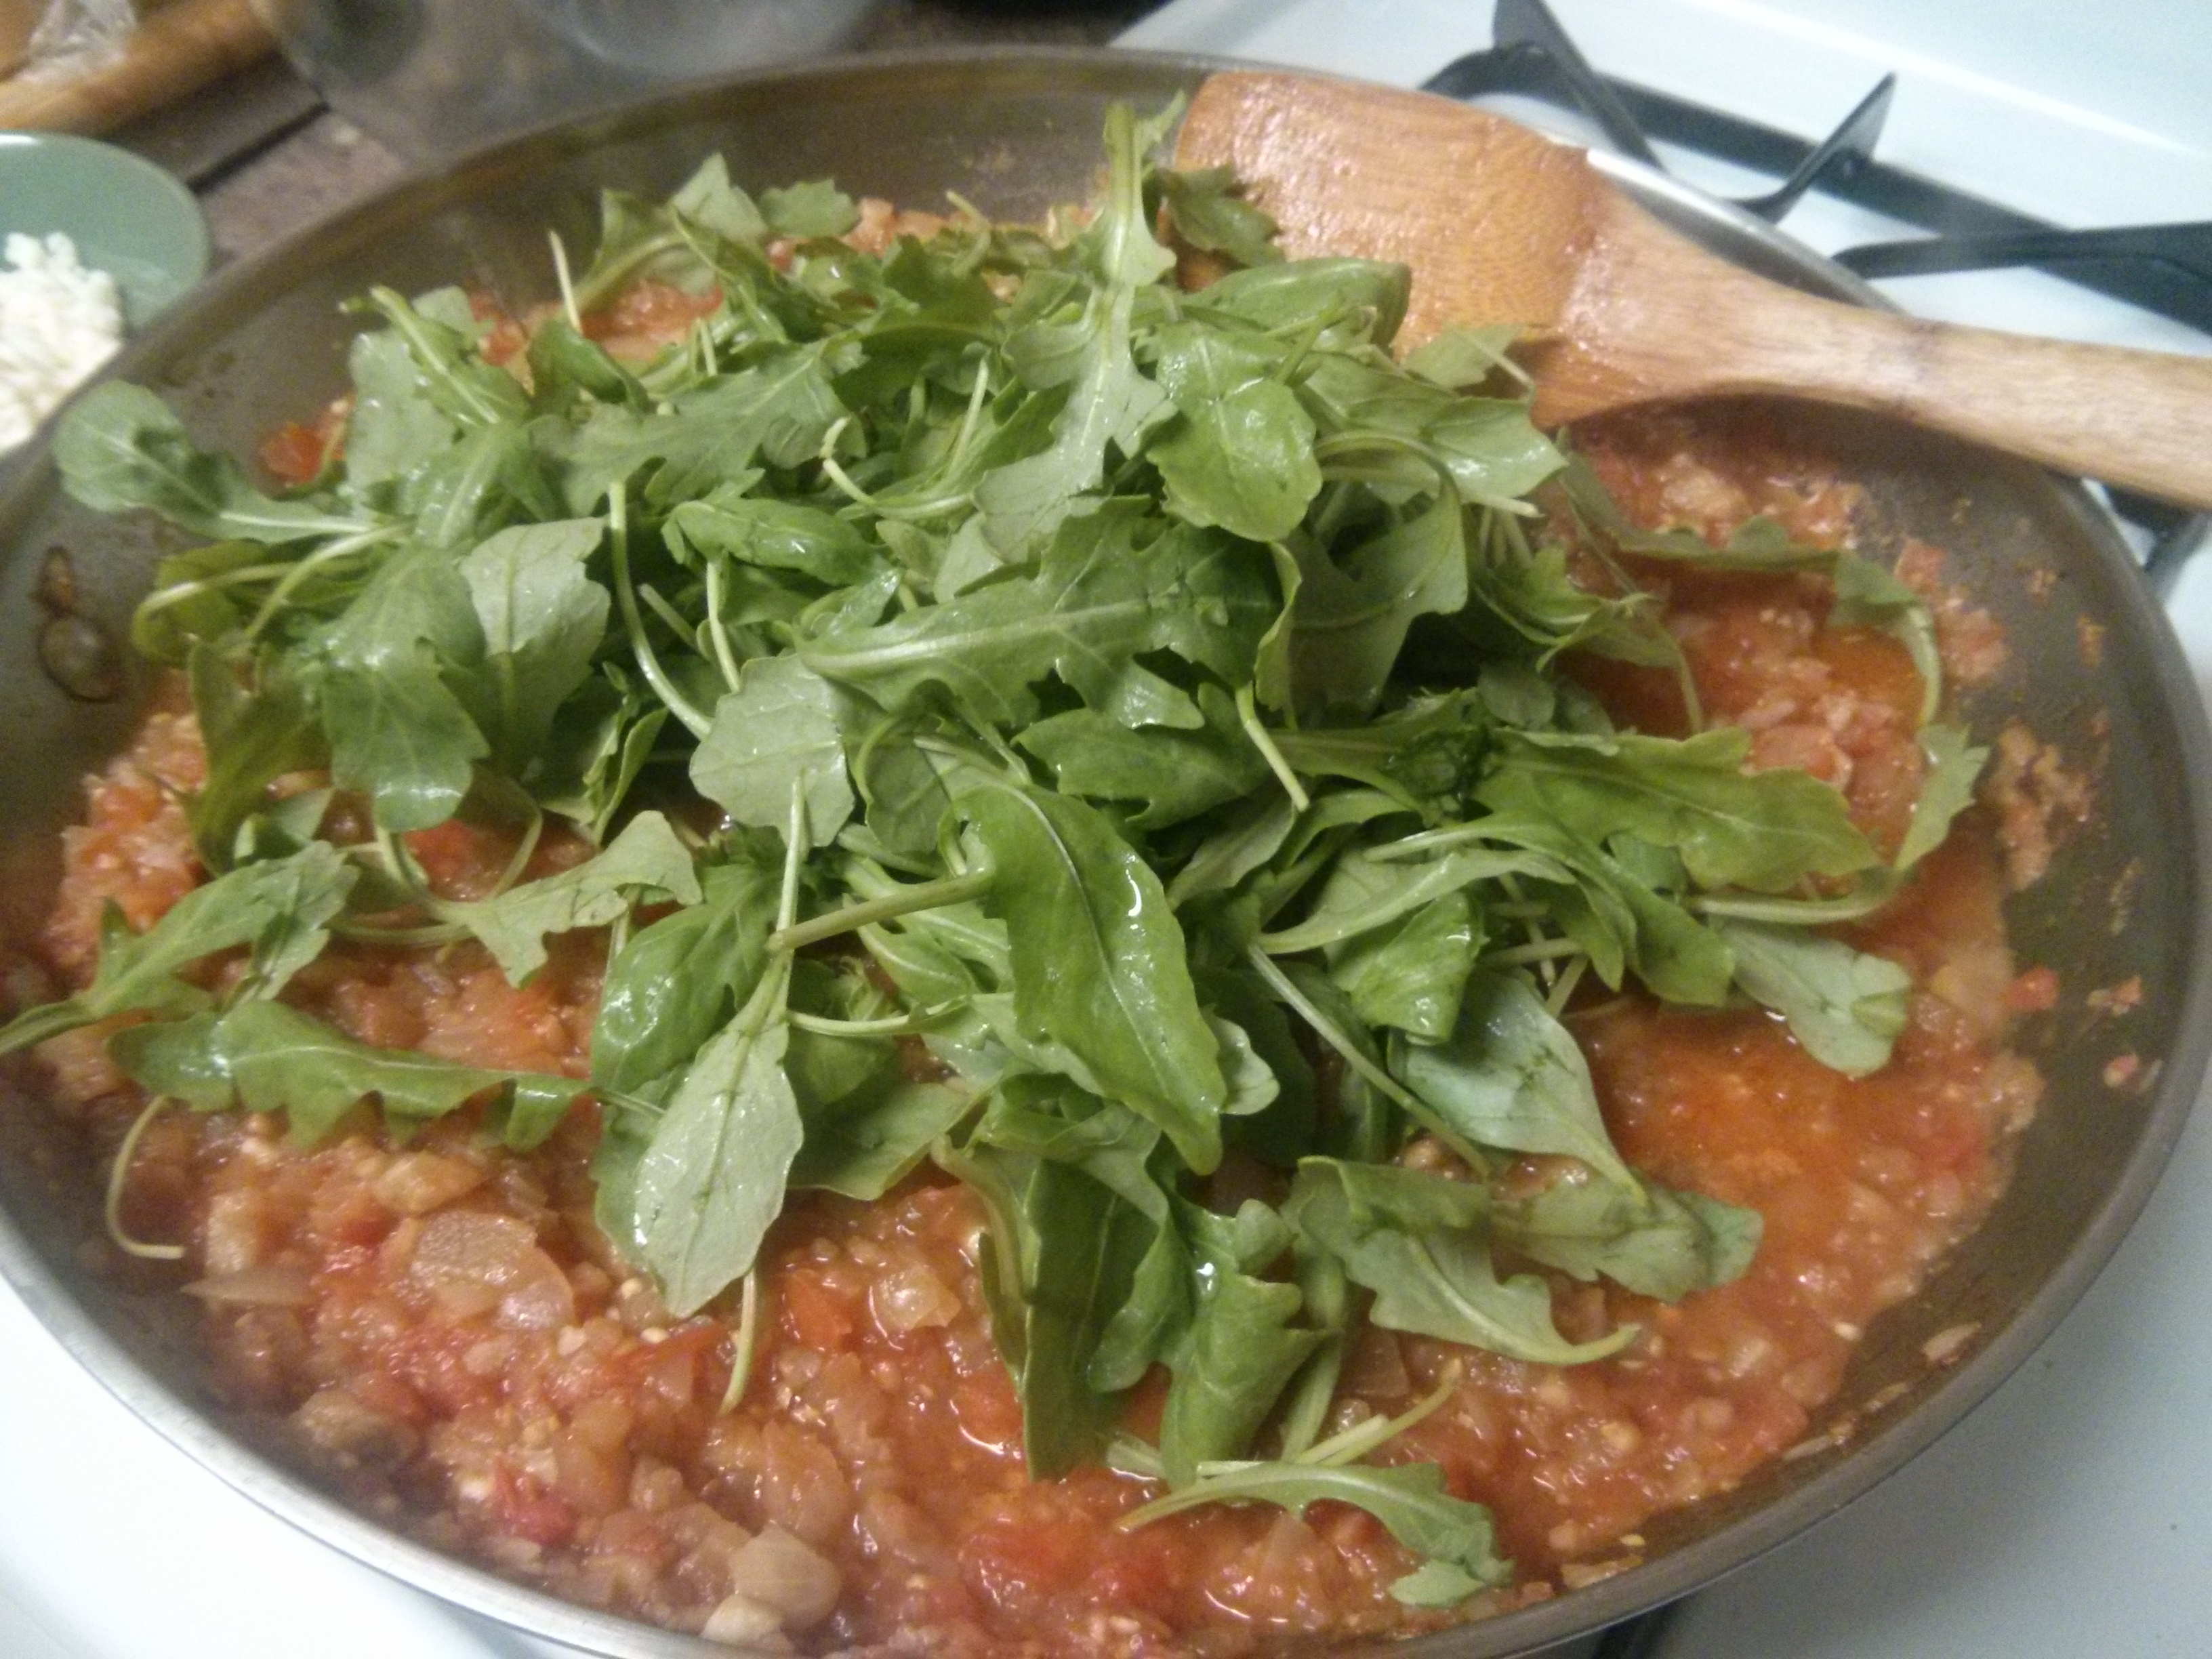 ... ingredients: the arugula, bread crumbs, and Parmesan and mozzarella